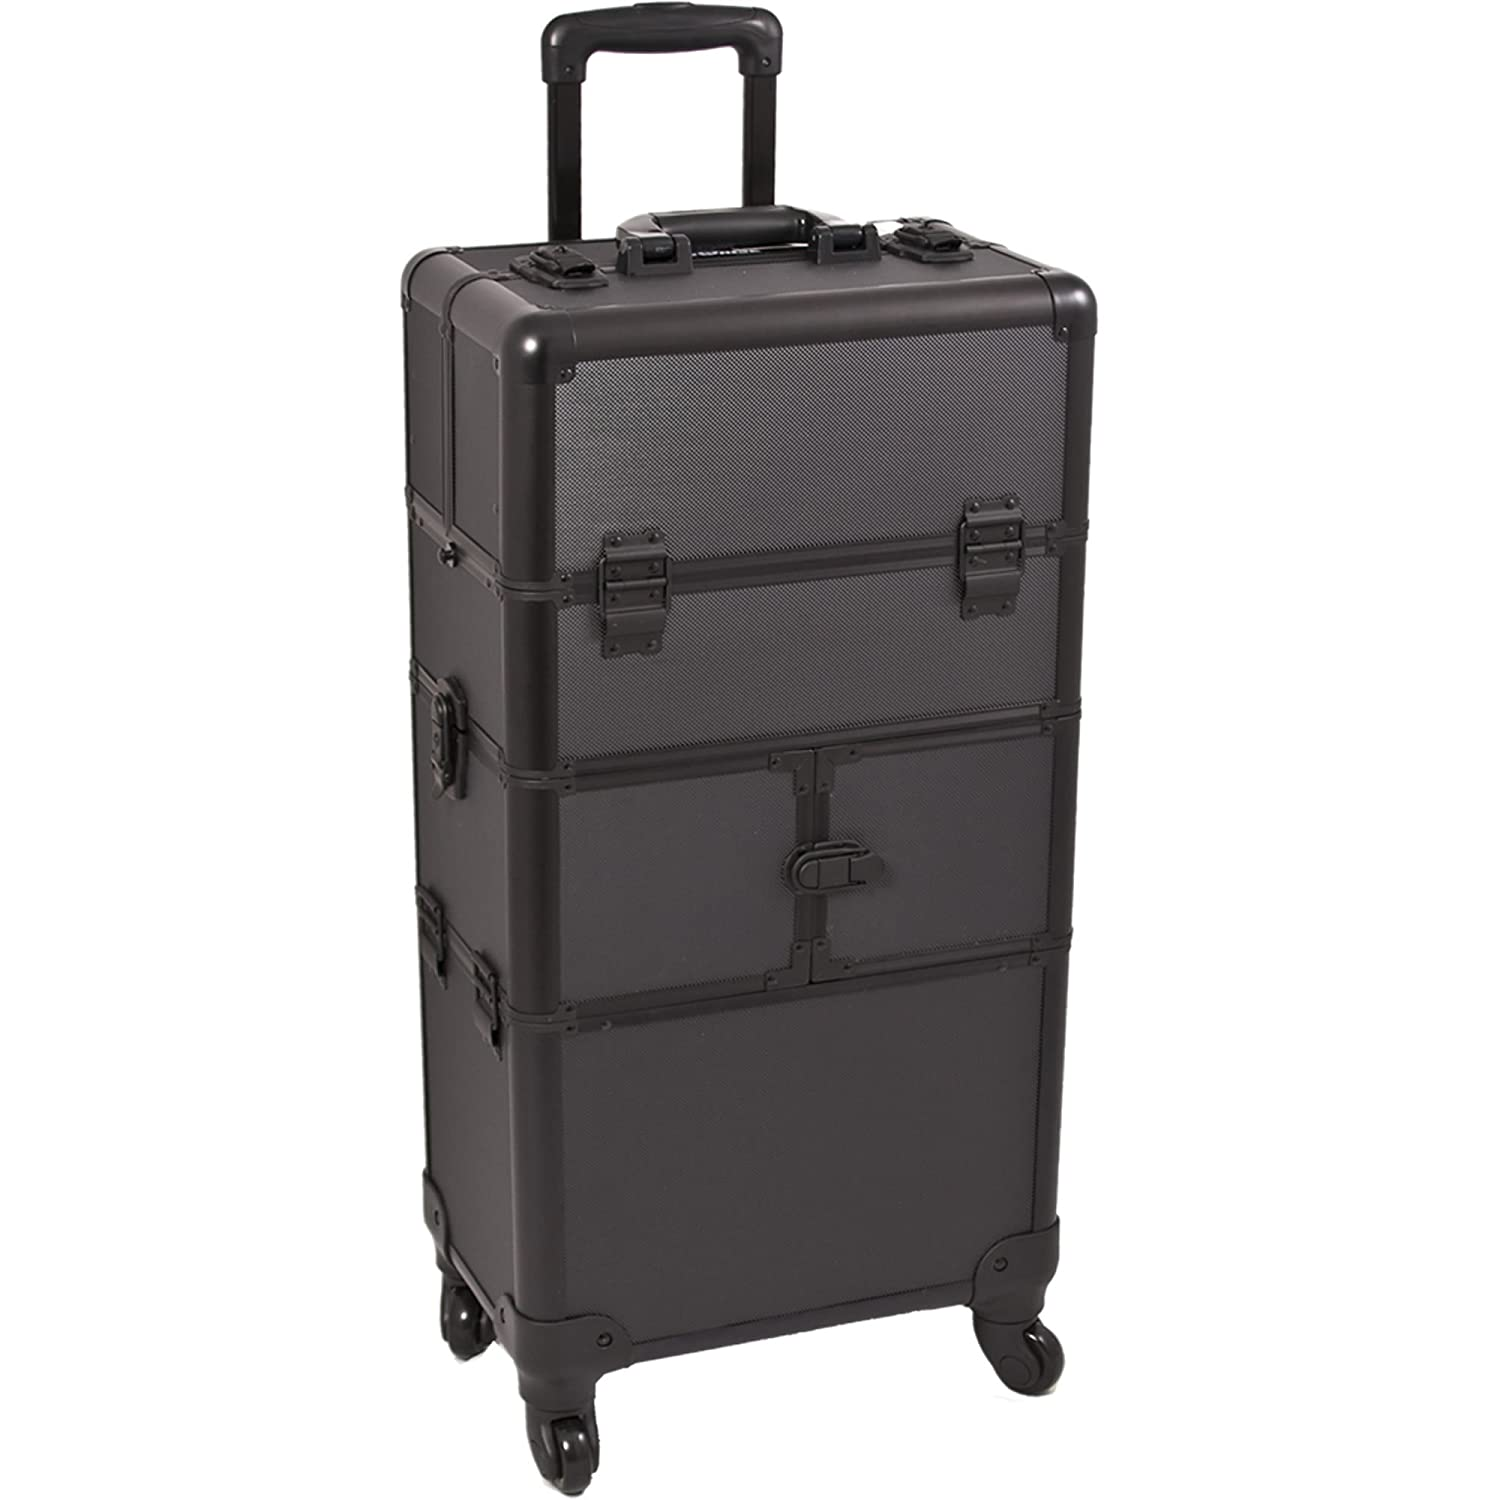 SUNRISE Makeup Case on Wheels 2 in 1 Hair Stylist I3564, 9 Trays with Brush Holder, 4 Wheel Spinner, Locking with 2 Mirrors and Shoulder Strap, Black Dot